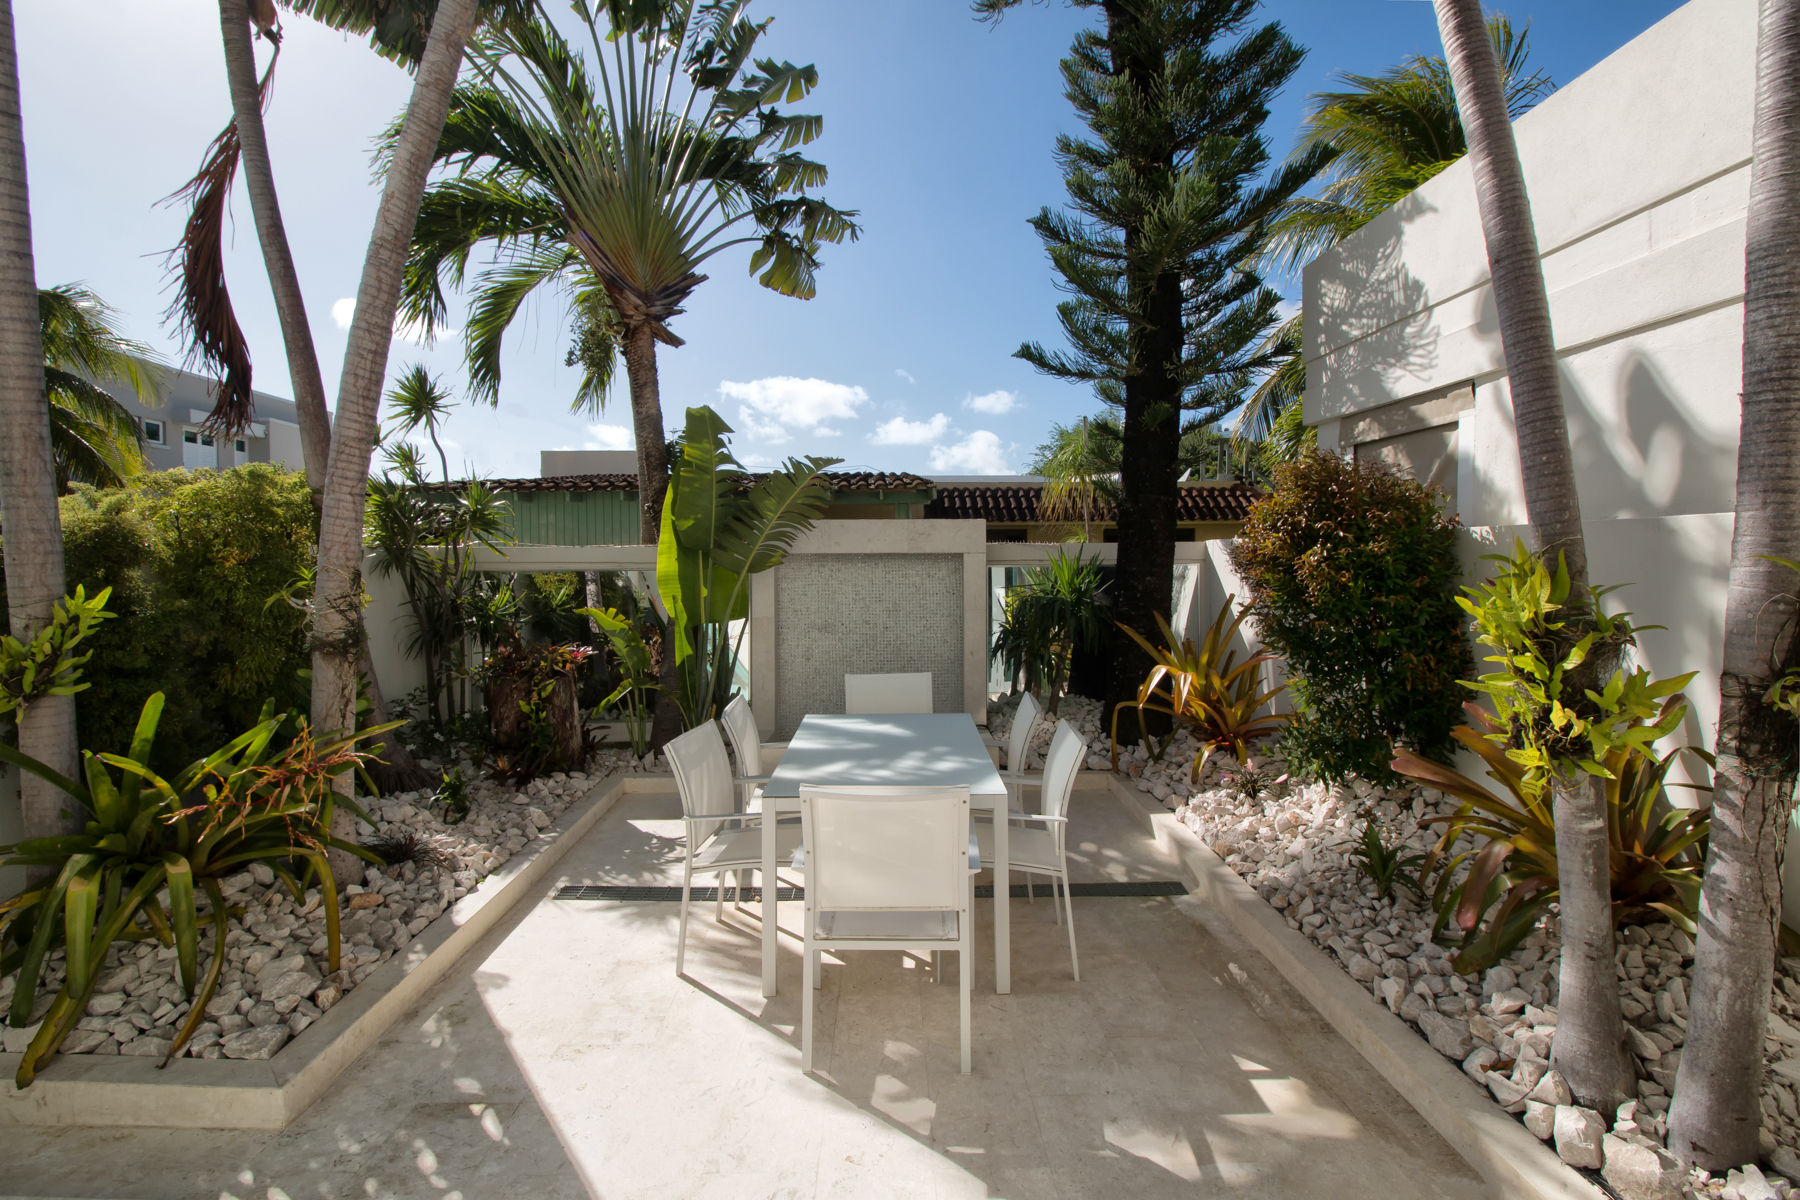 Additional photo for property listing at Gut Renovated Off Water Townhouse, Punta Las Marias 8E Calle Inga Chalets De Mar San Juan, Puerto Rico 00913 Пуэрто-Рико